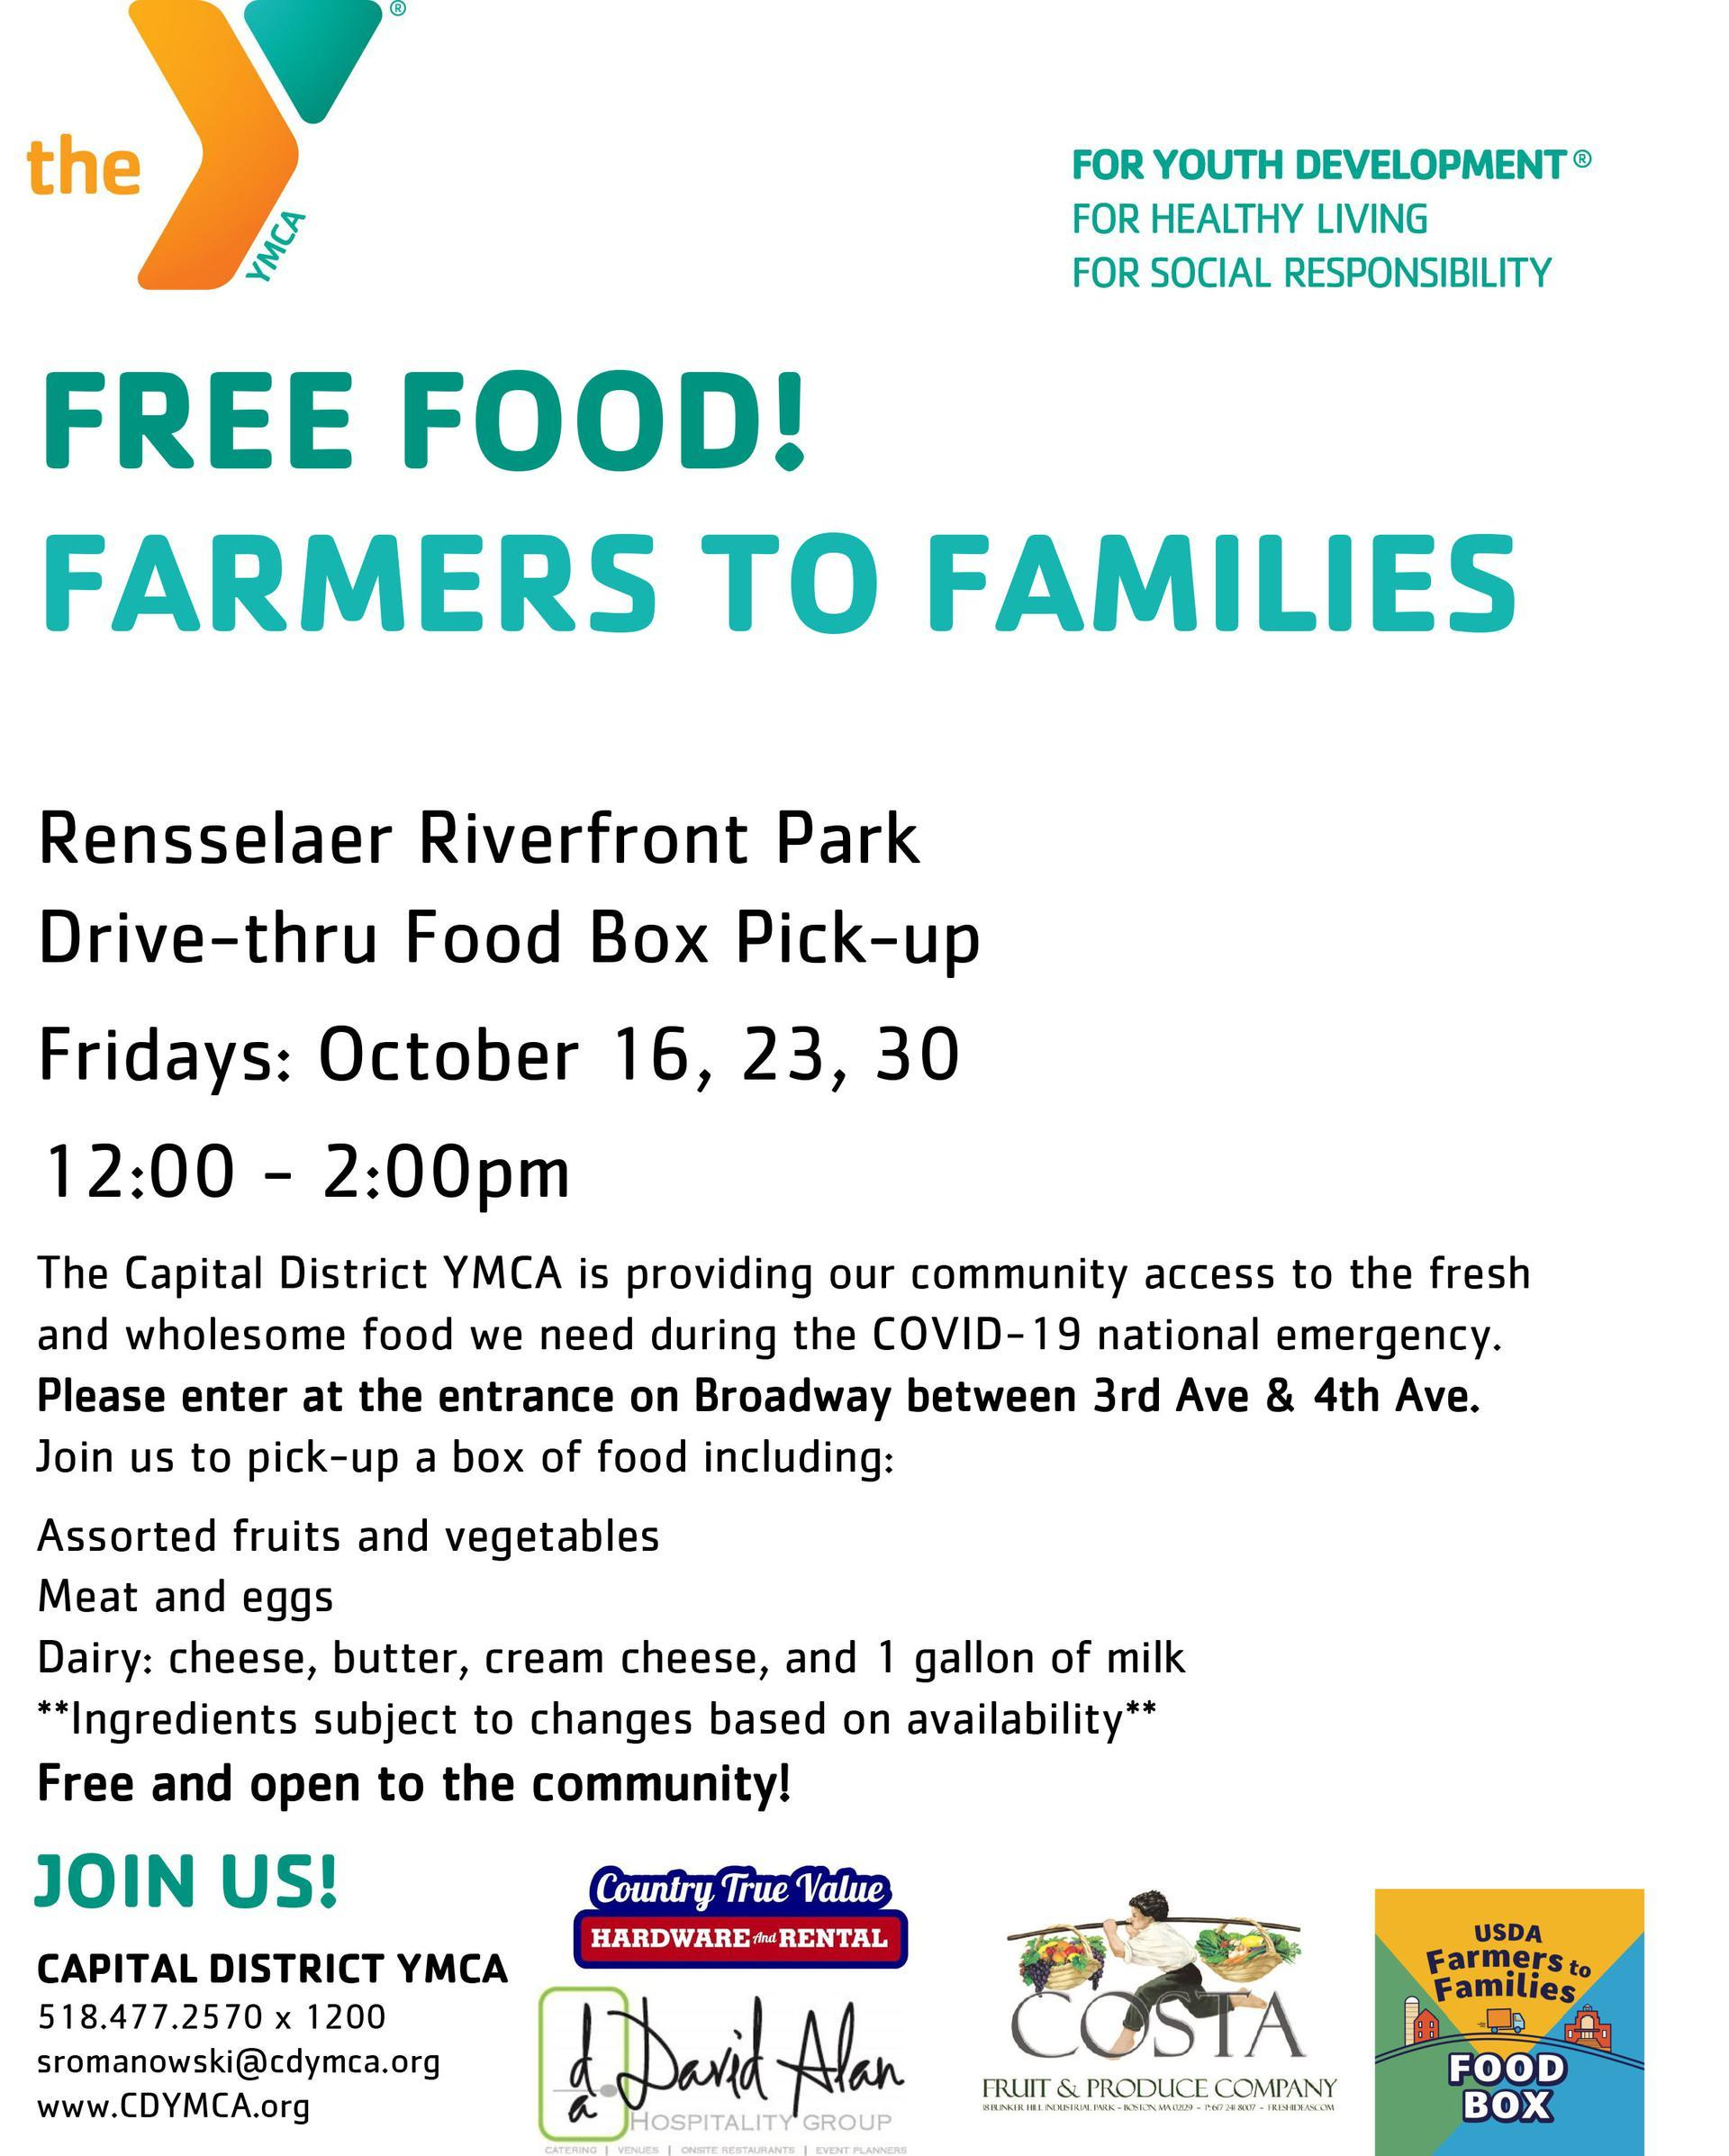 YMCA farmers to families flyer